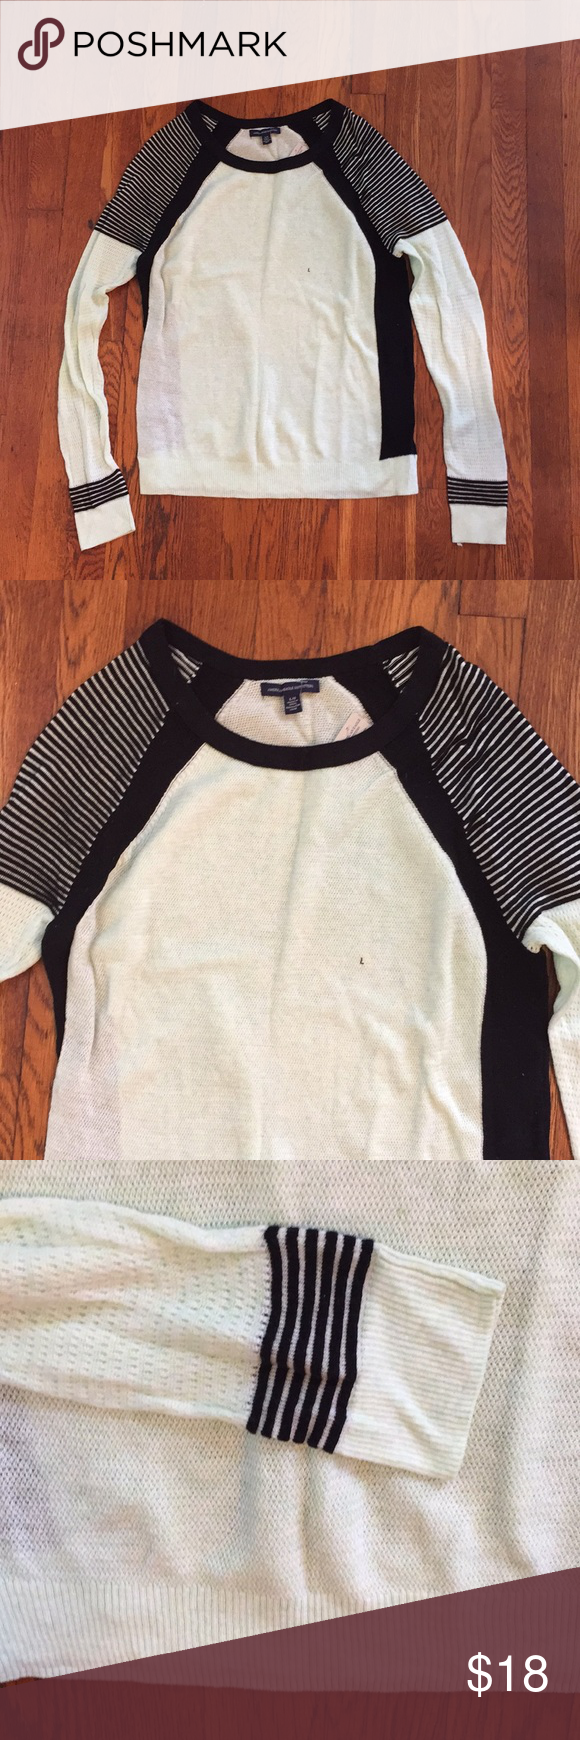 American Eagle Sweater So cute! So soft! So thin but warm! This is ...